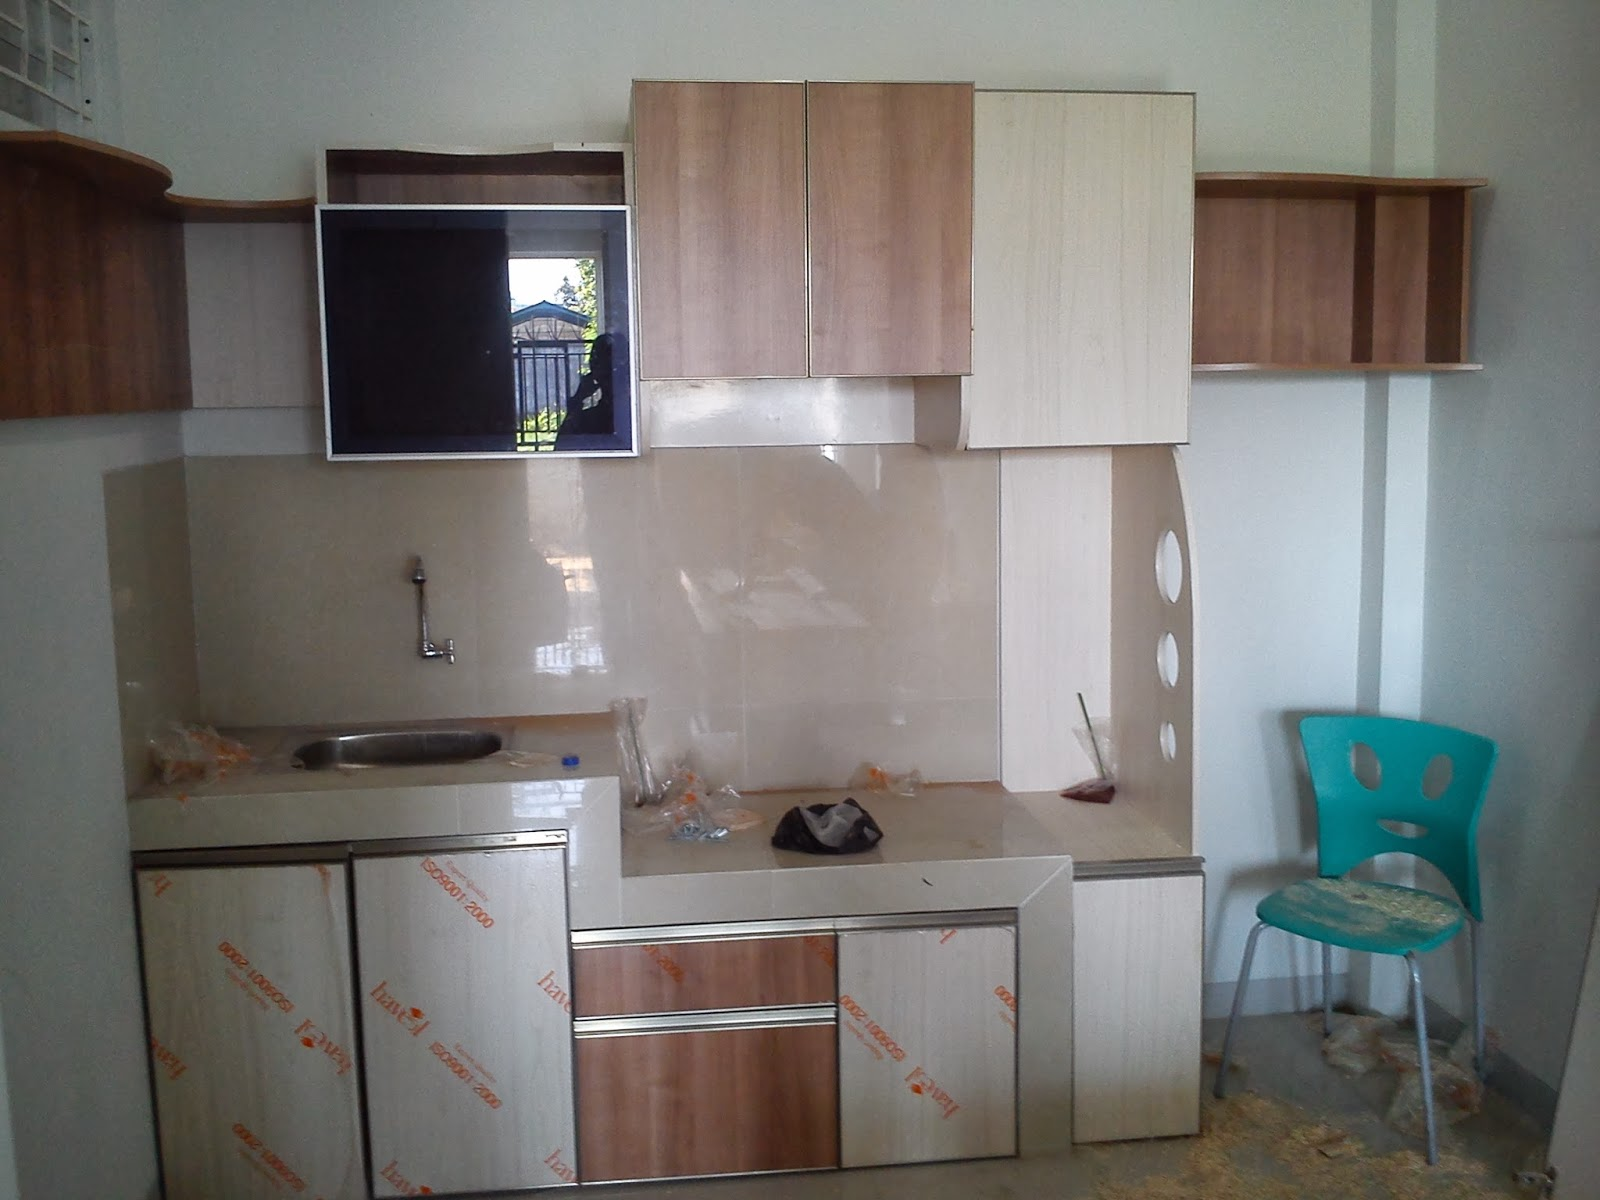 Jasa kitchenset solo desain kitchenset solo for Kitchen set yang sudah jadi